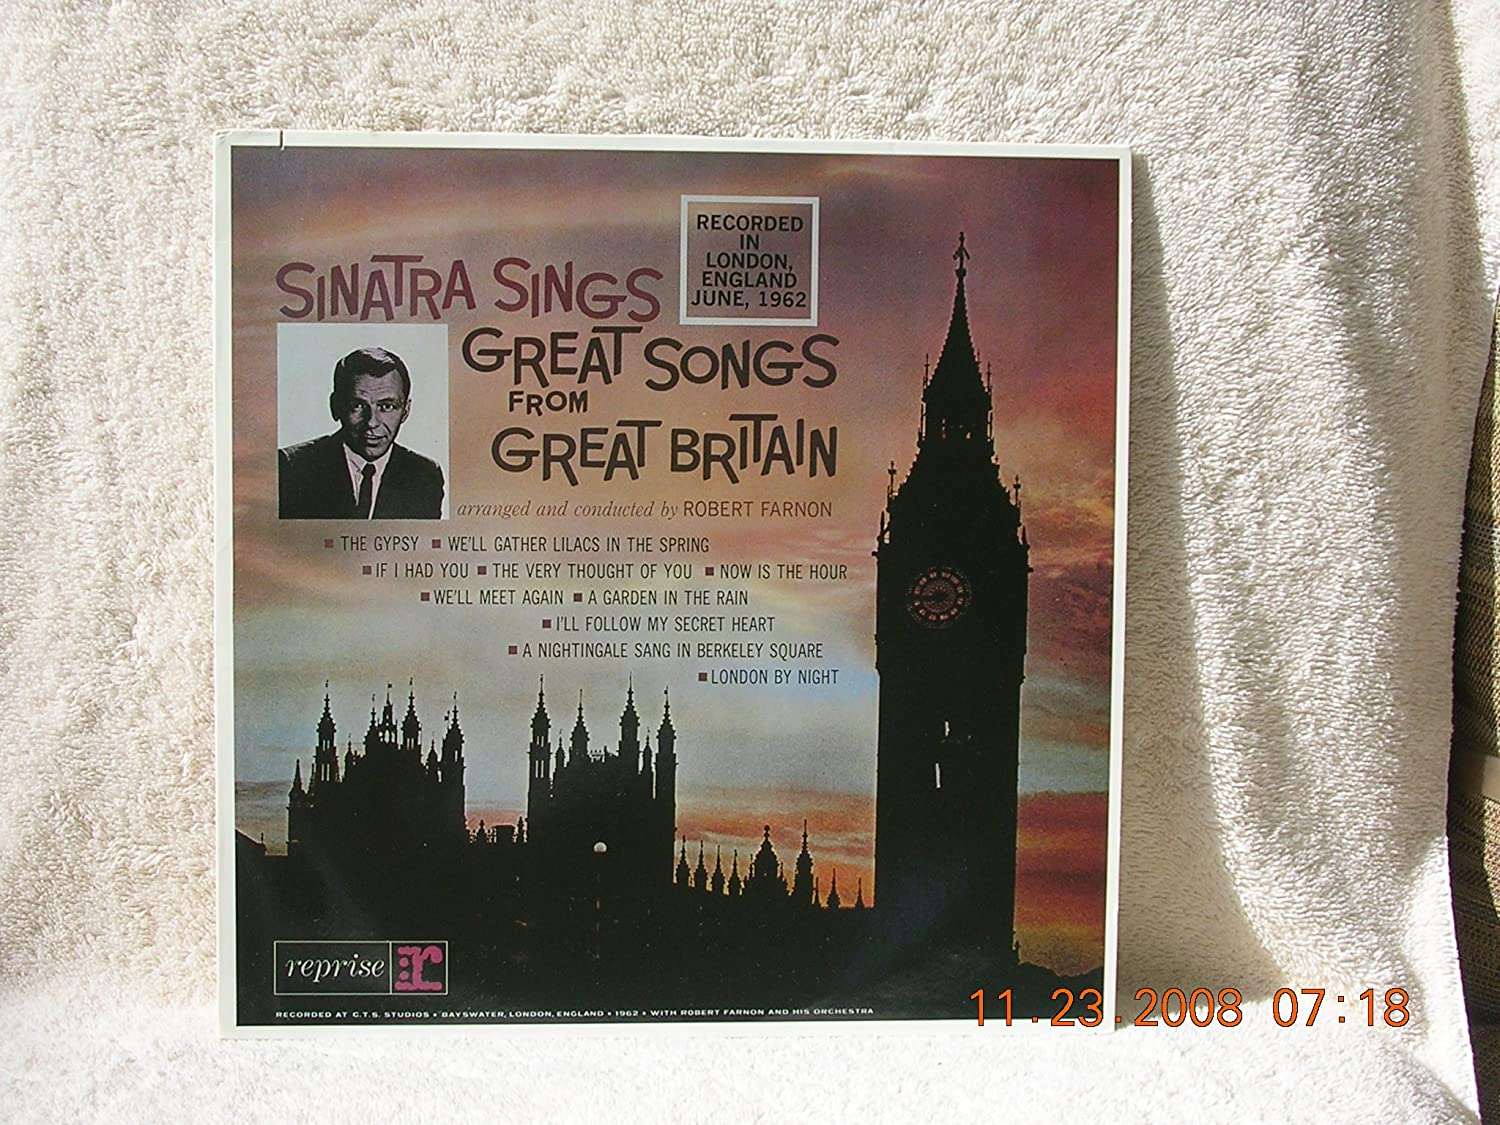 Frank Sinatra   Sinatra Sings Great Songs From Great Britain   Amazon.com  Music